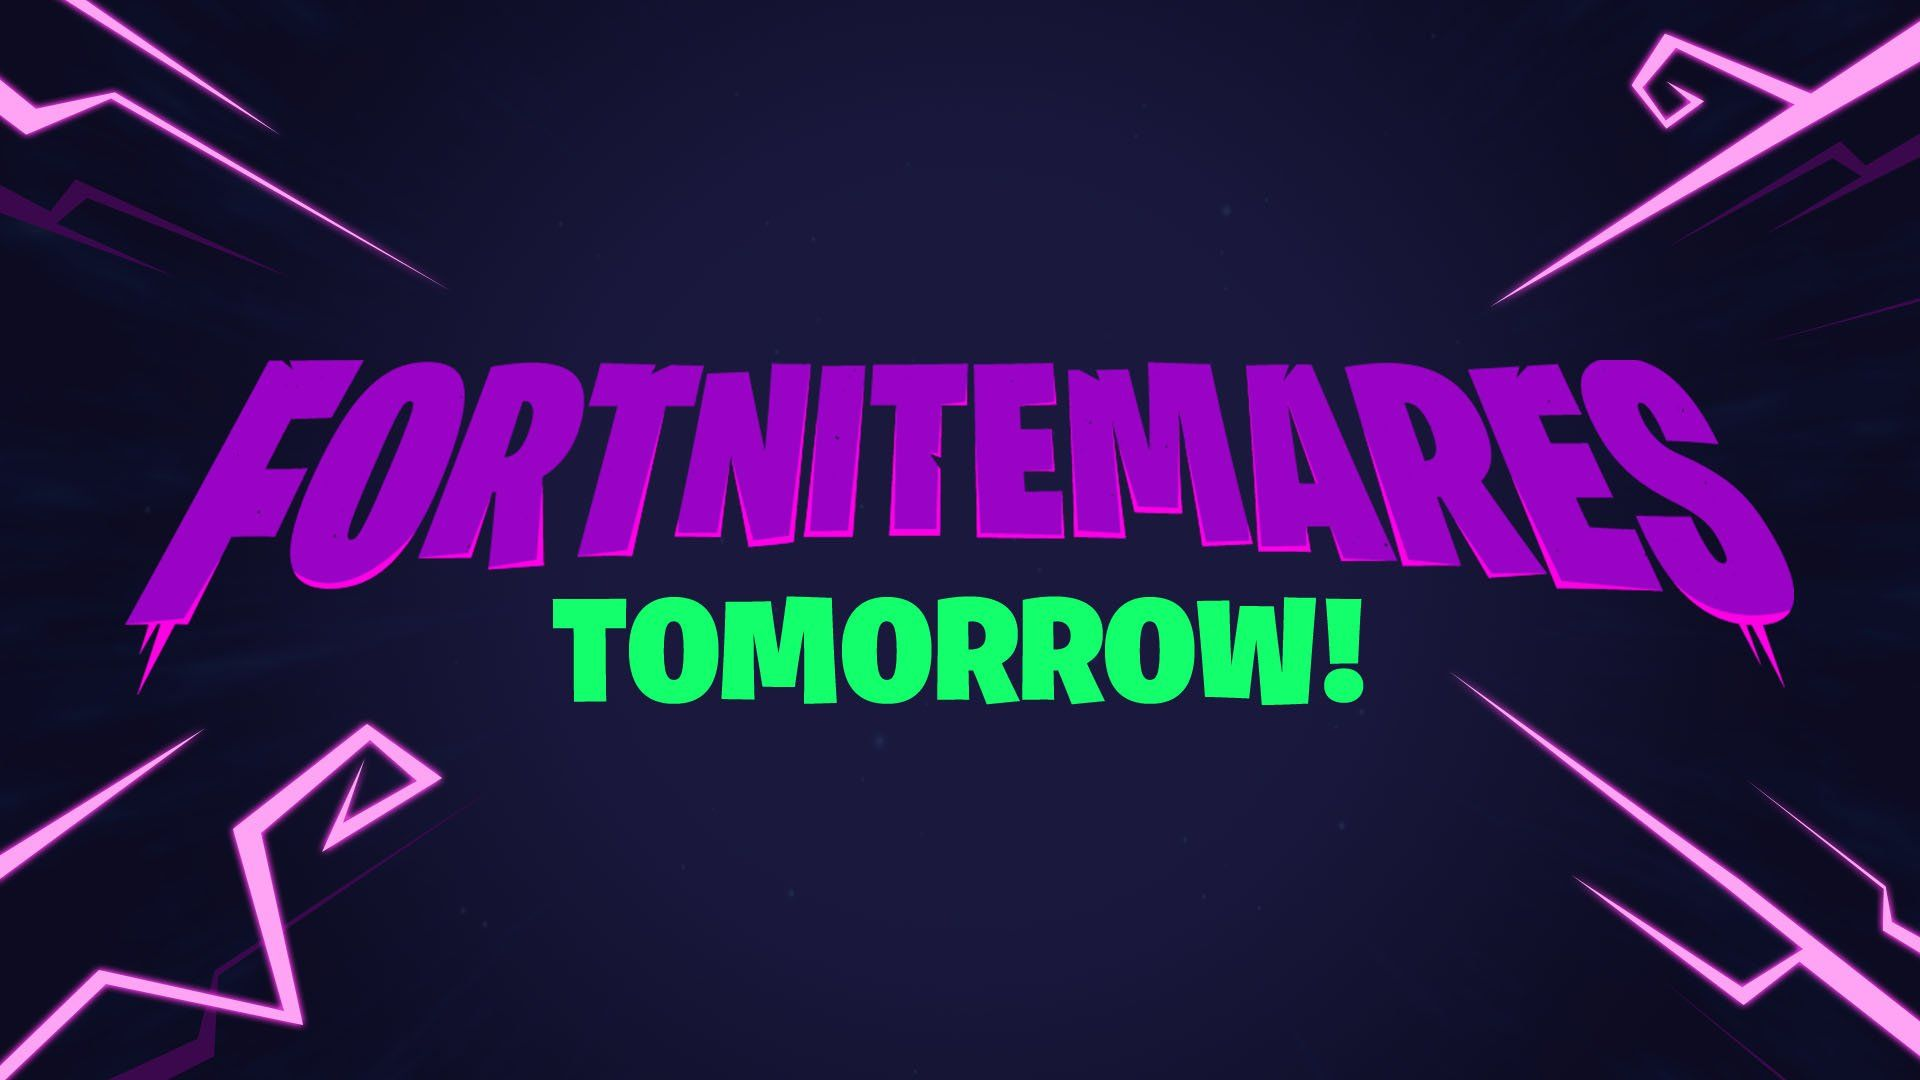 Fortnitemares tomorrow logo